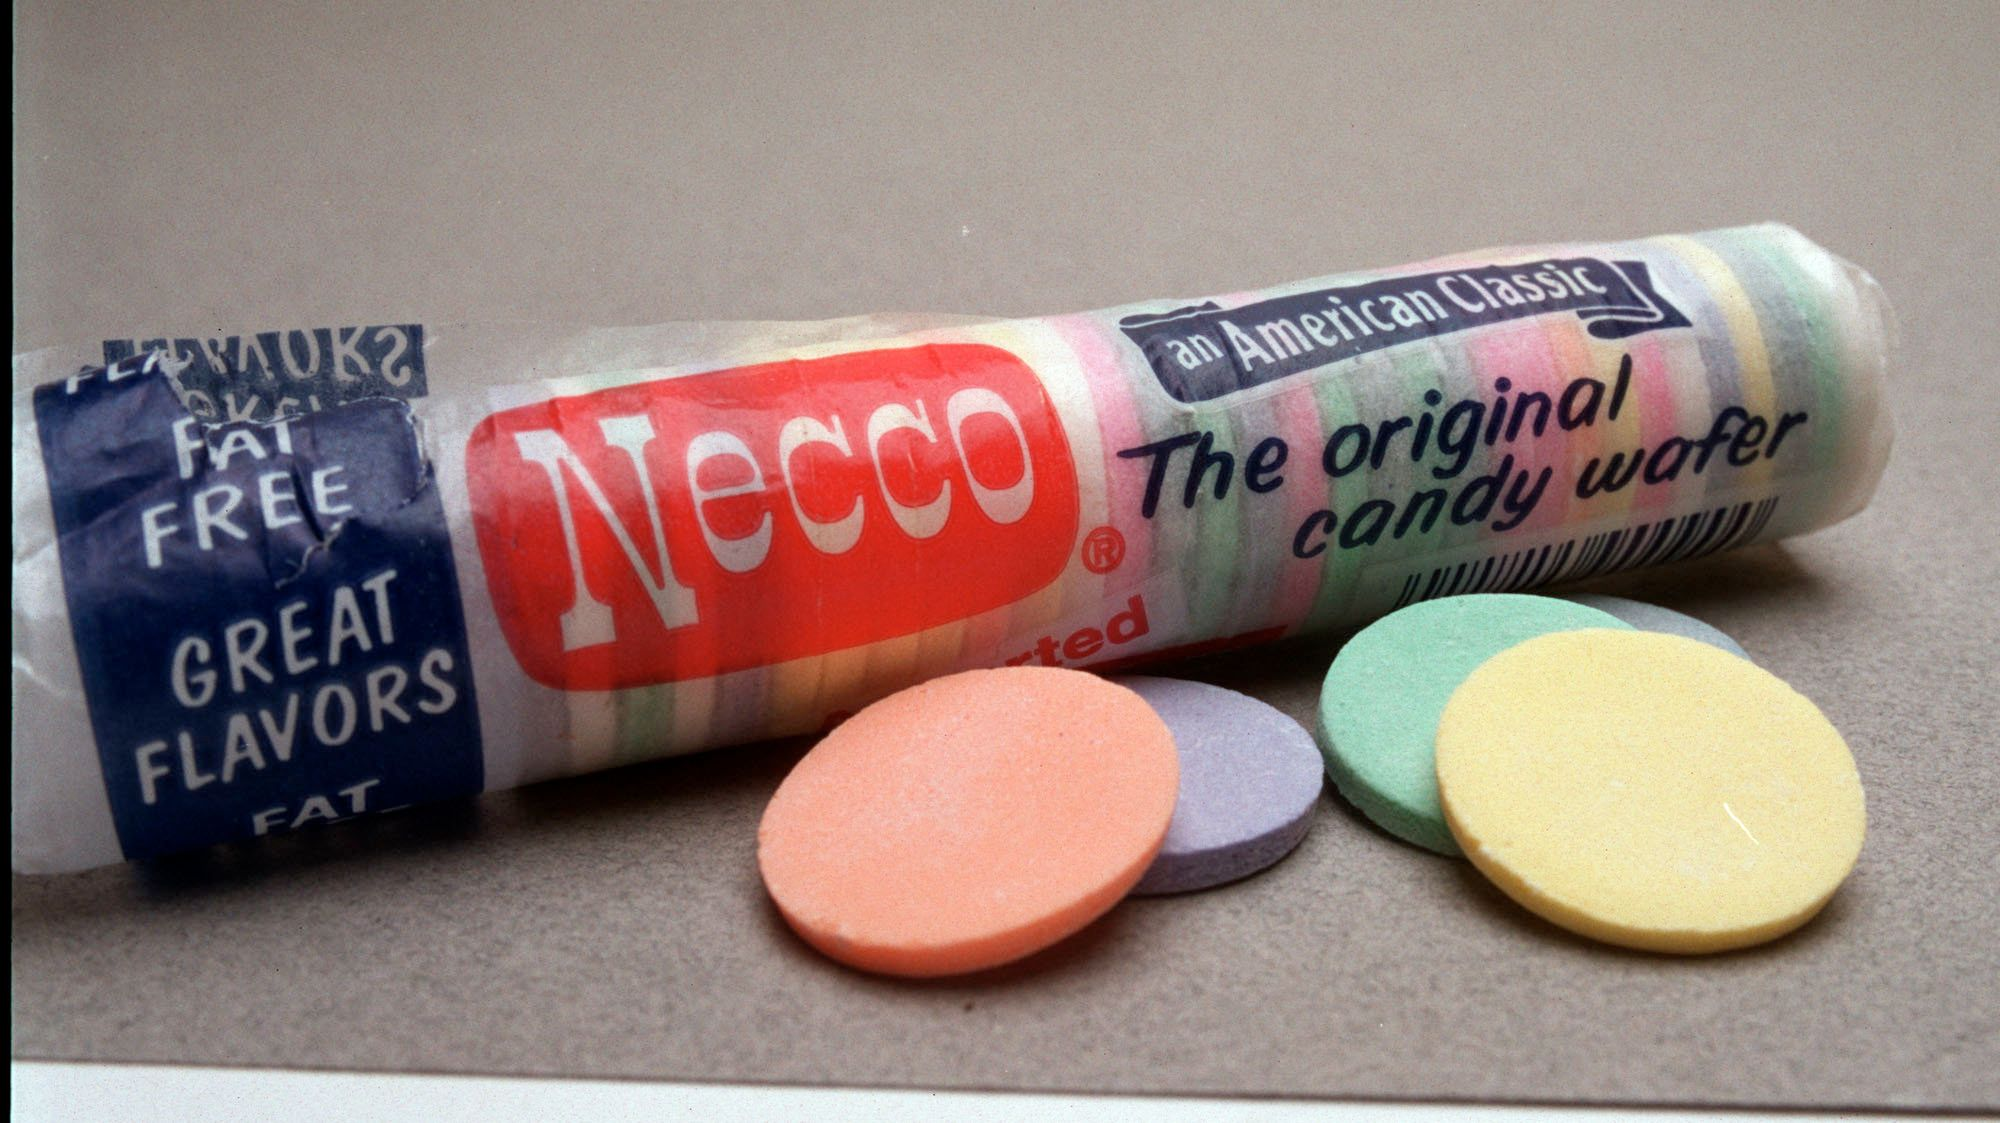 Necco Wafers, sporting bright pastel colors and retro packaging, date back to 1847.